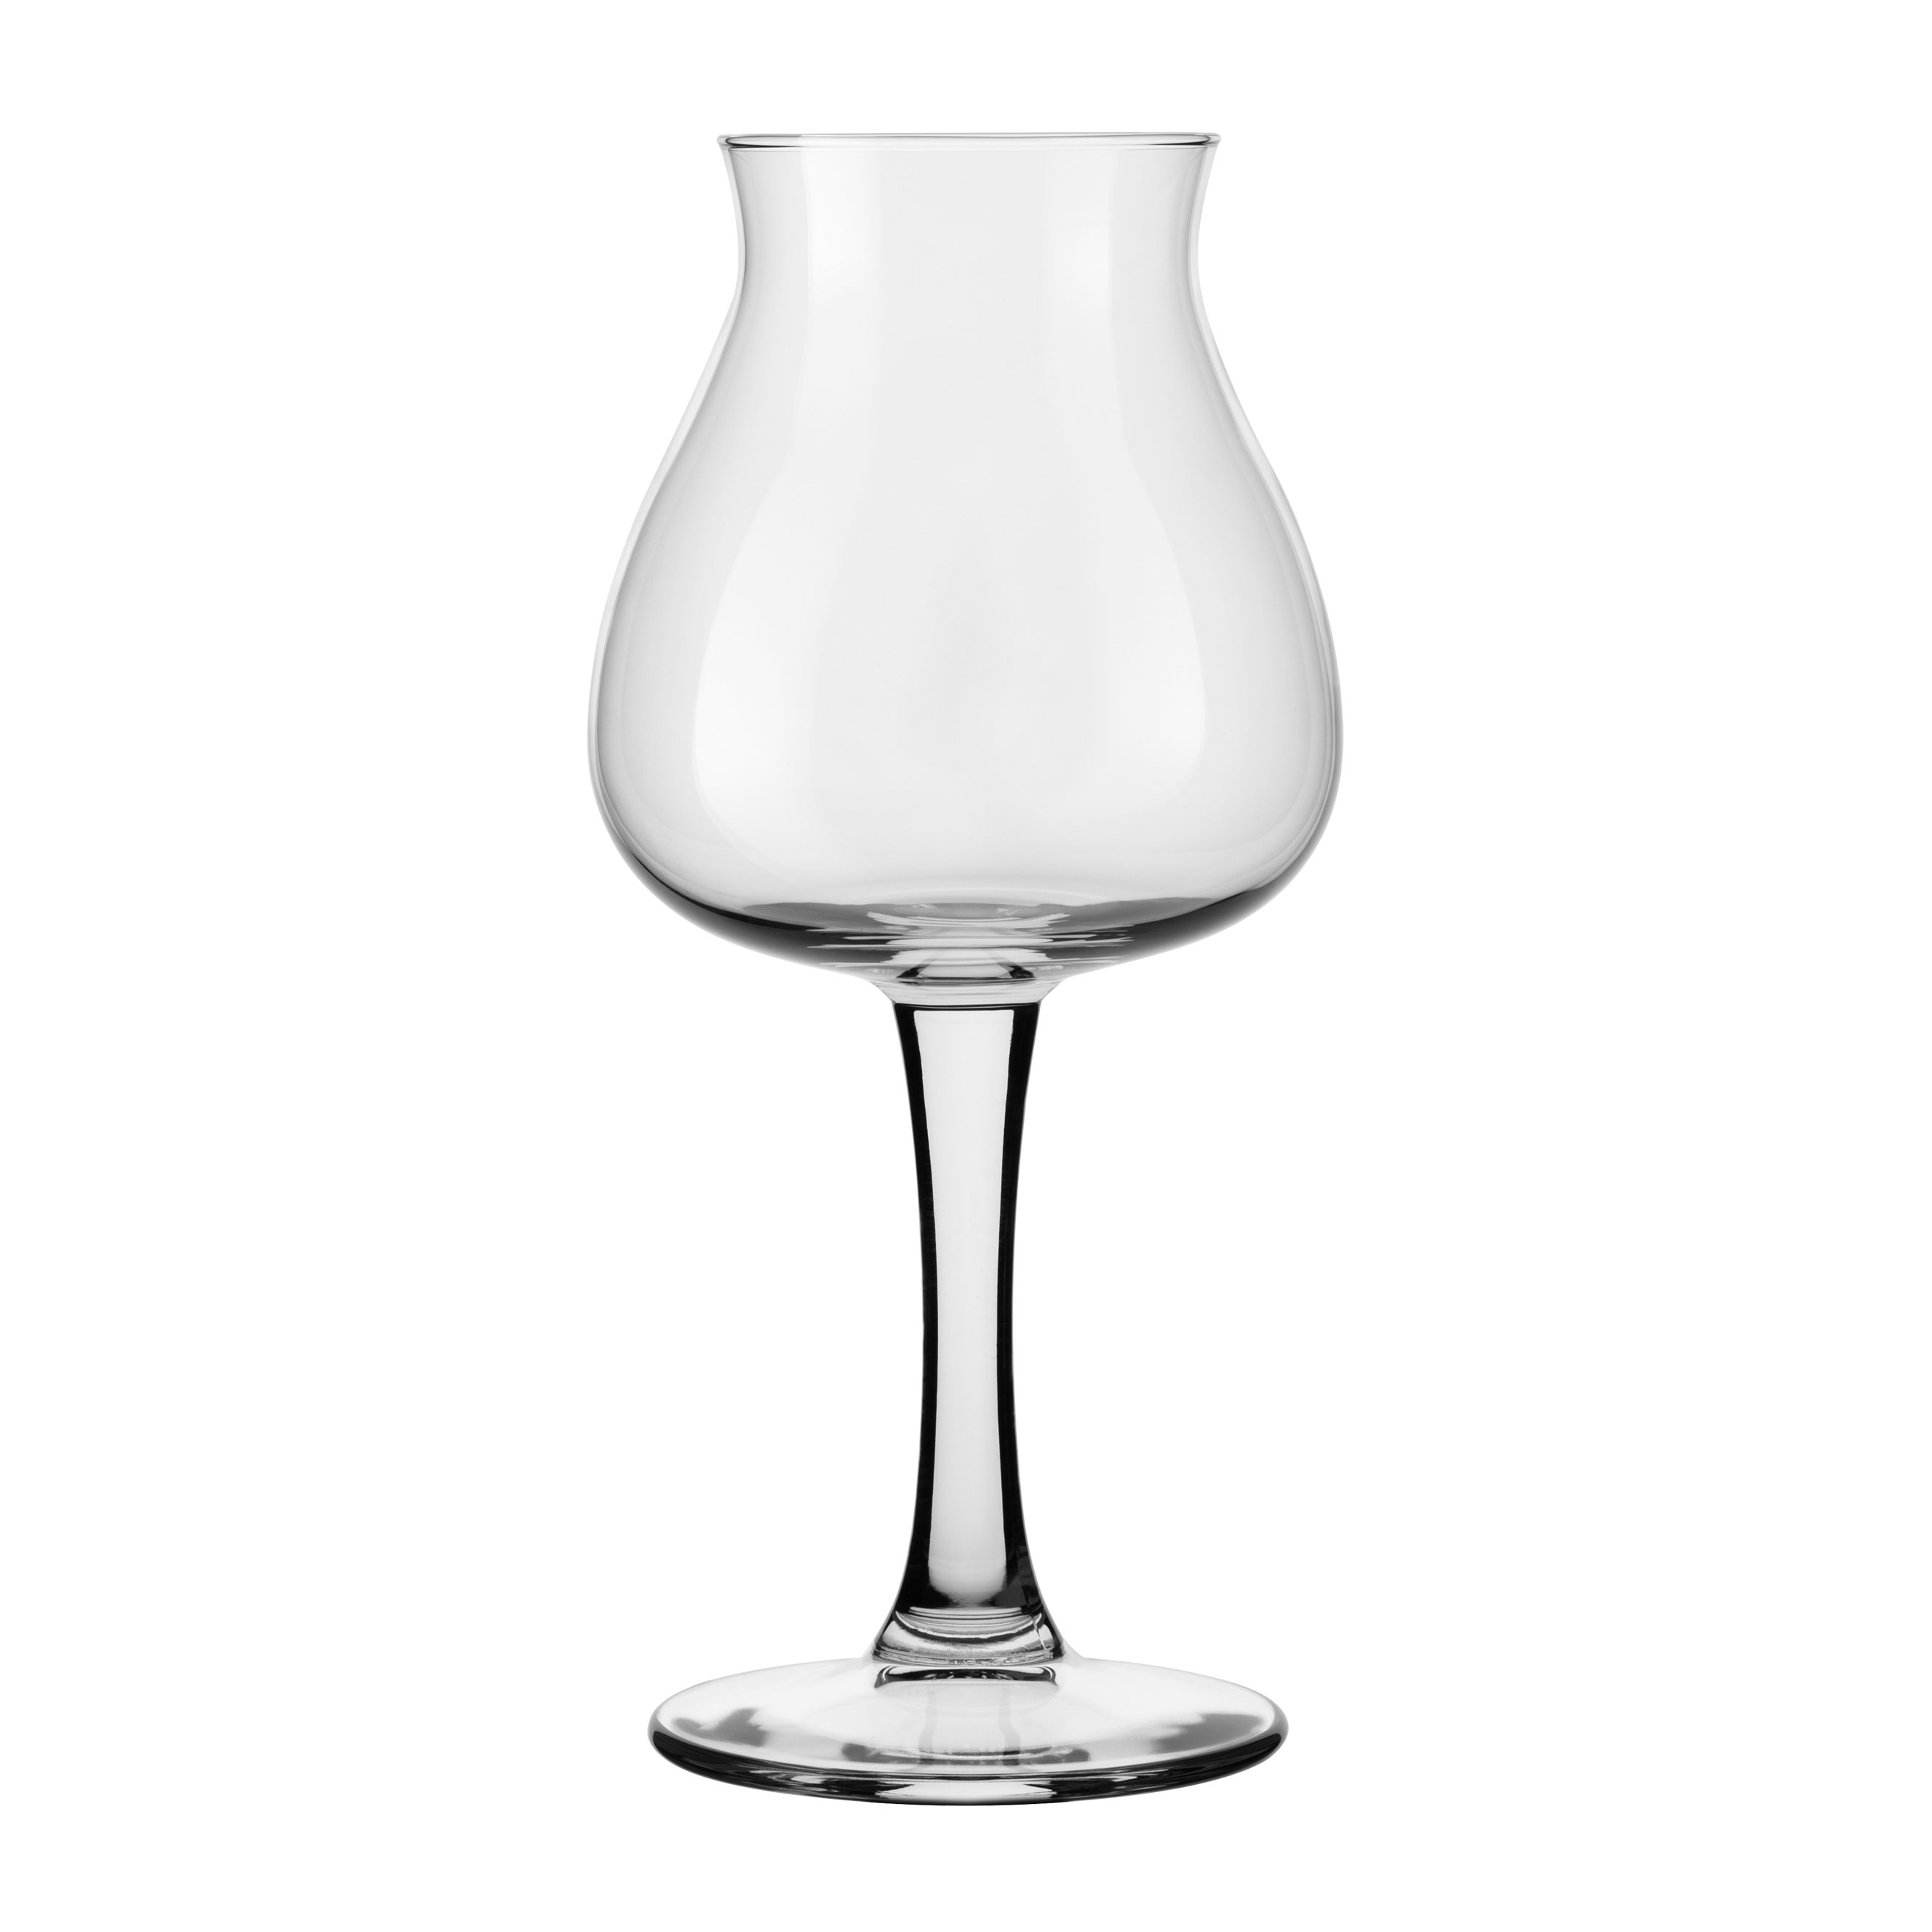 Libbey Glass 441246 glass, beer